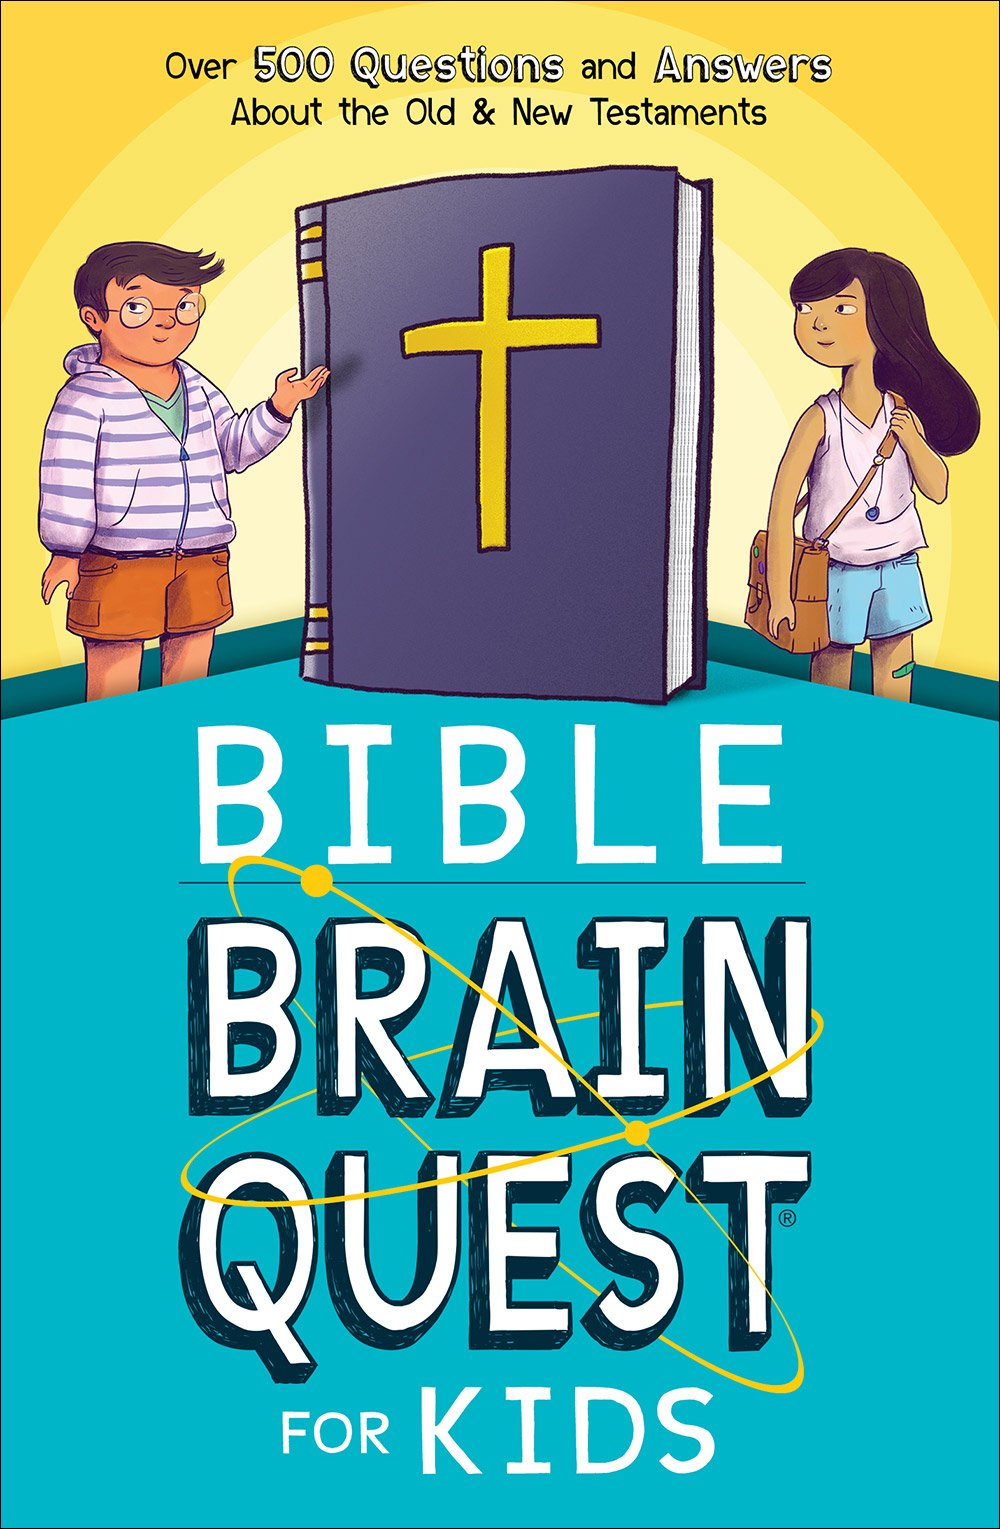 Bible Brain Quest® for Kids: Over 500 Questions and Answers About the Old &  New Testaments: Inc. Workman Publishing Co.: 9780736968829: Amazon.com:  Books